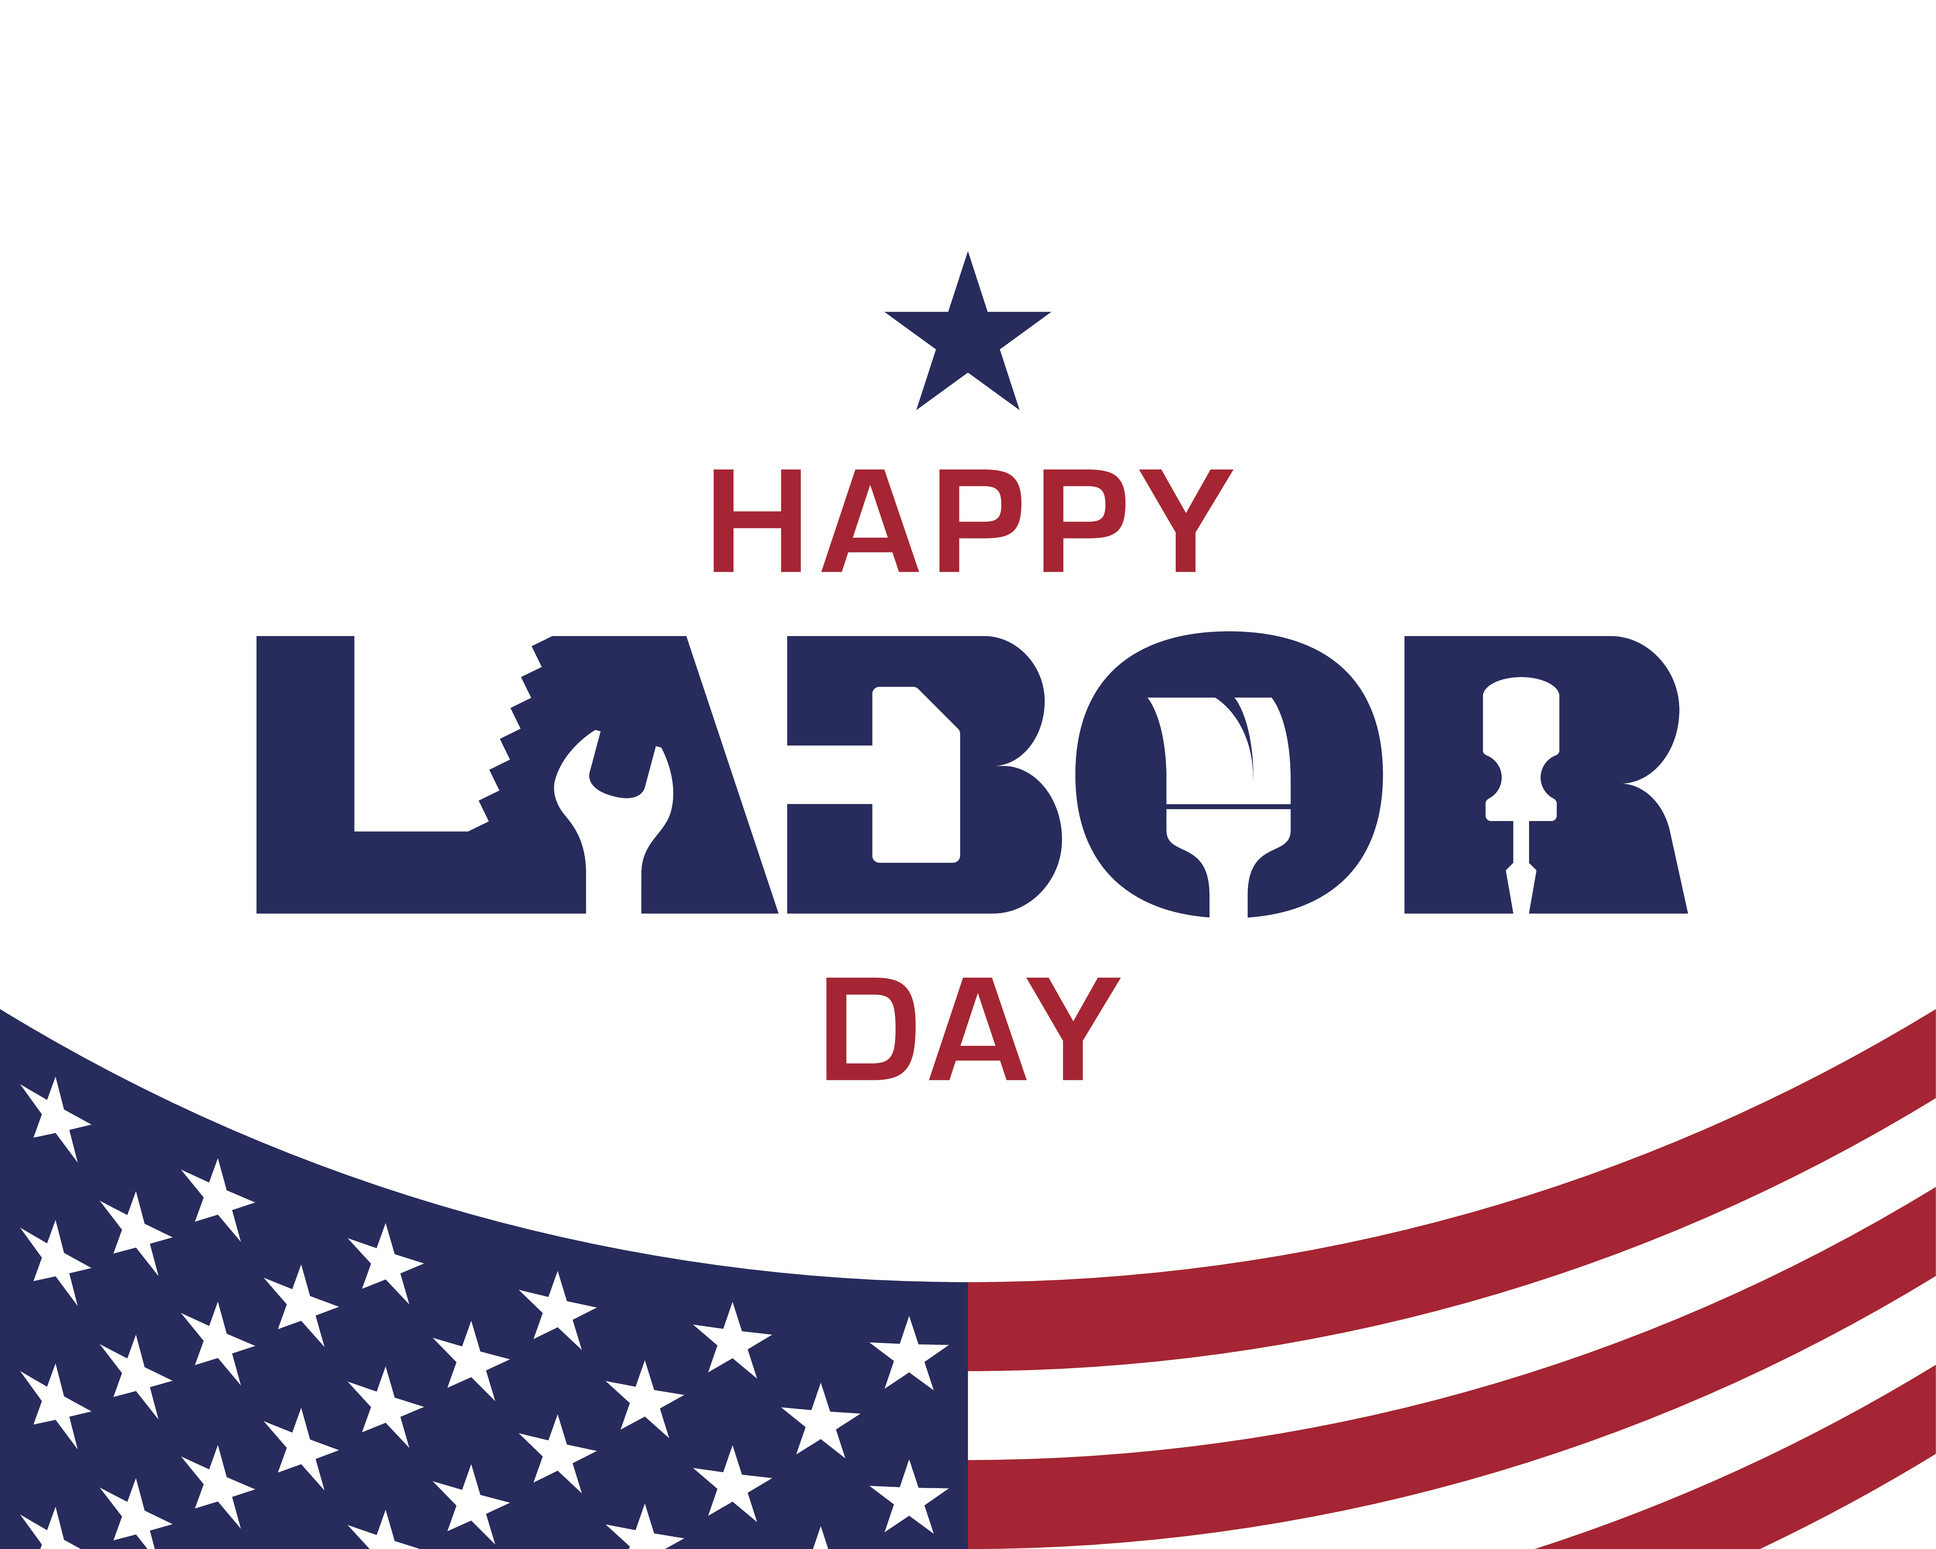 Here in this article, you will find some great deals on Labor Day, especially on mattresses, electronics, home appliances, and travel. You will get a huge discount on some top stores like Amazon, Walmart, Best Buy and BON-TON, JCPenny etc.